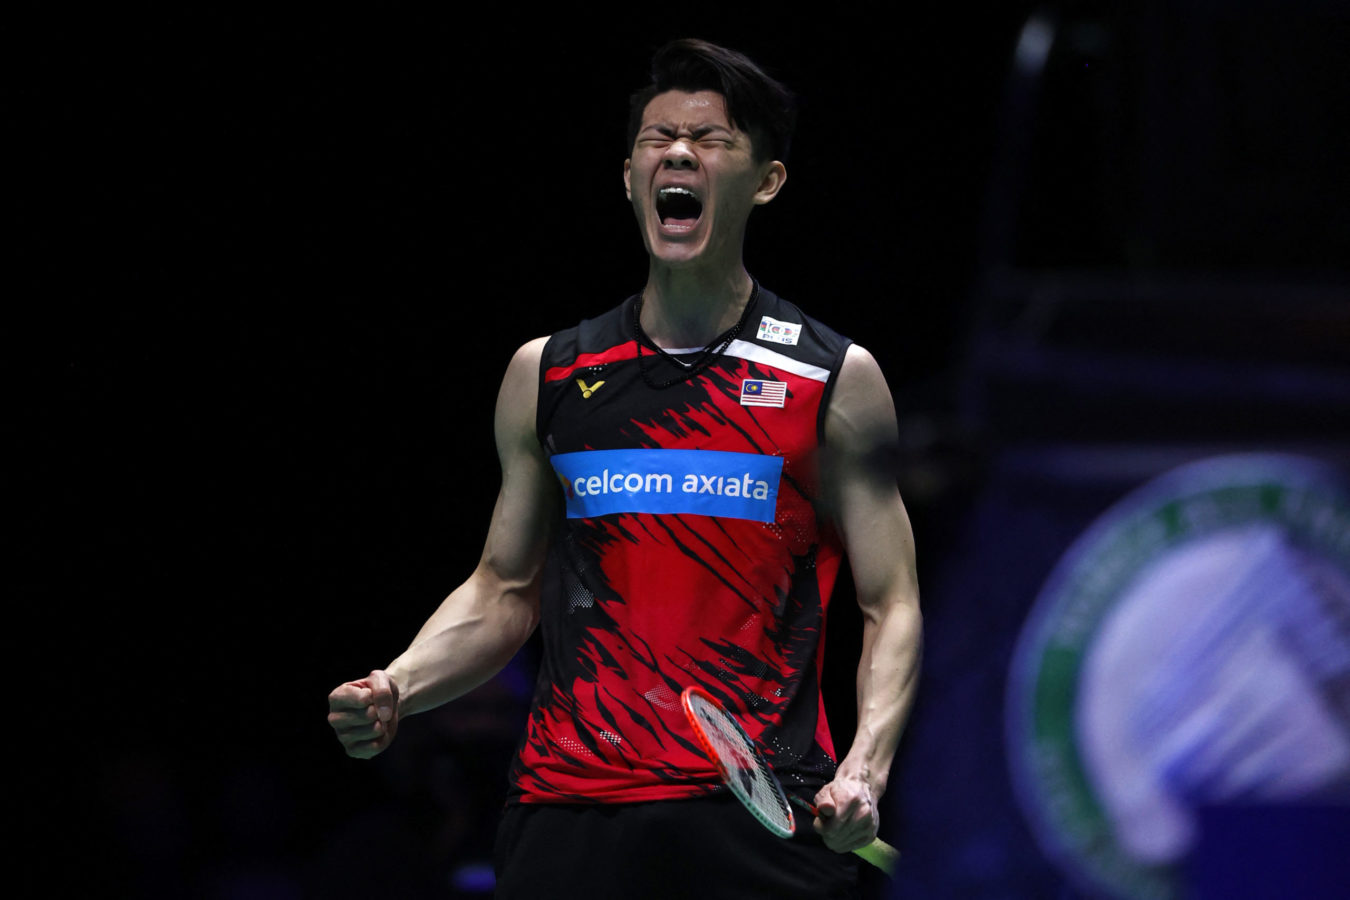 Watch here: The best matches between Lee Zii Jia and Kento Momota in 2021